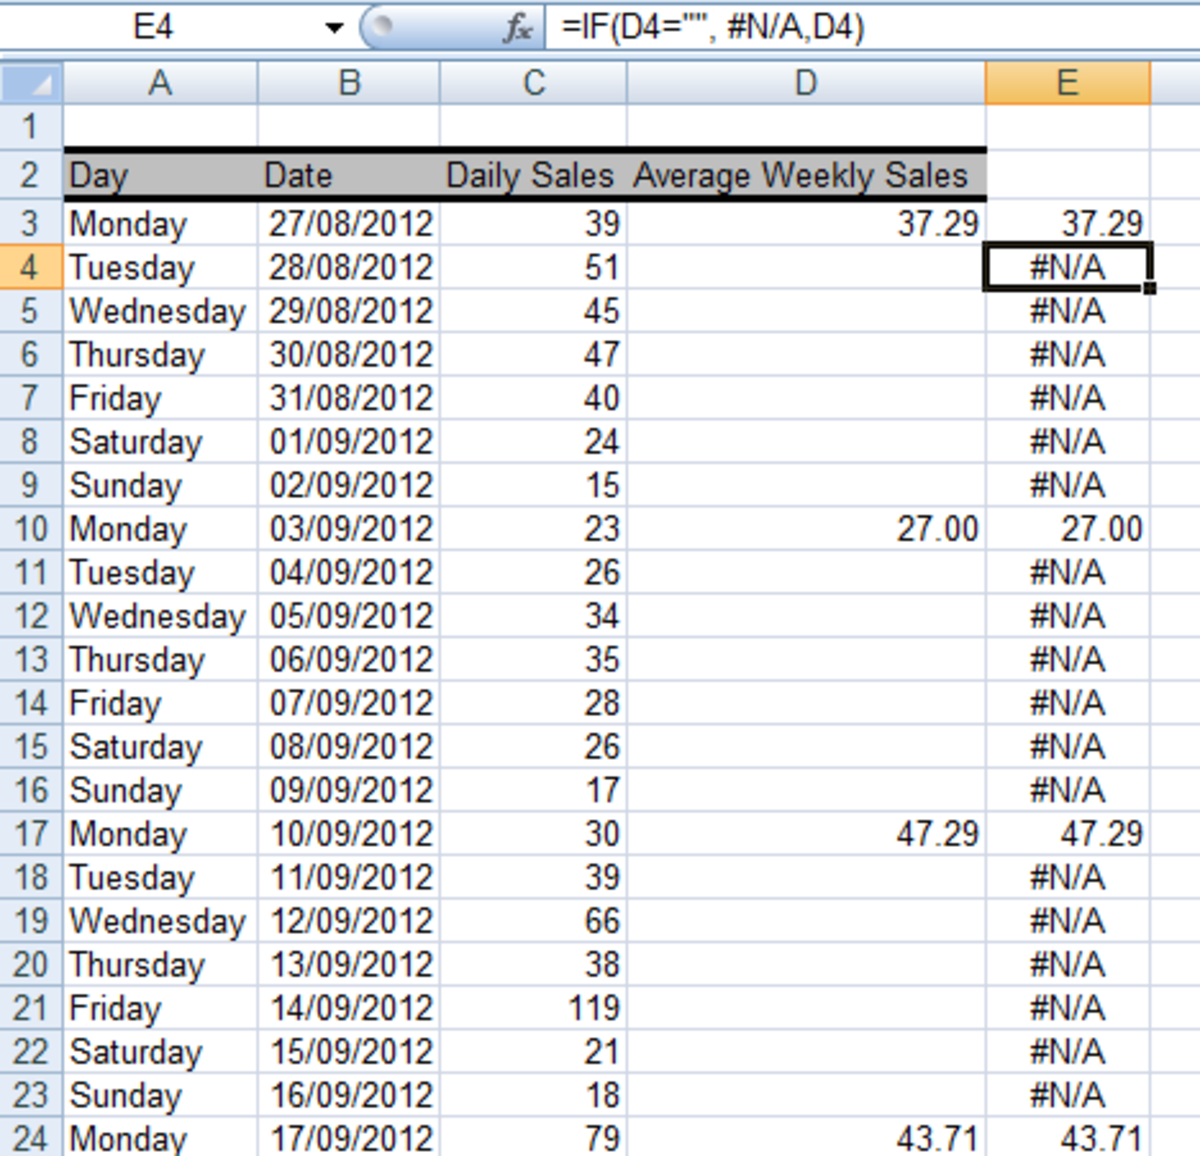 Ediblewildsus  Unique How To Get Excel  And  To Ignore Empty Cells In A Chart Or  With Licious Using The If Function In A Formula To Convert Empty Cells To Na With Awesome Excel Scheduling Also Excel Data Range In Addition Row Function In Excel And What Can You Use Excel For As Well As How To Calculate Percentages In Excel  Additionally Simple Interest Formula Excel From Turbofuturecom With Ediblewildsus  Licious How To Get Excel  And  To Ignore Empty Cells In A Chart Or  With Awesome Using The If Function In A Formula To Convert Empty Cells To Na And Unique Excel Scheduling Also Excel Data Range In Addition Row Function In Excel From Turbofuturecom